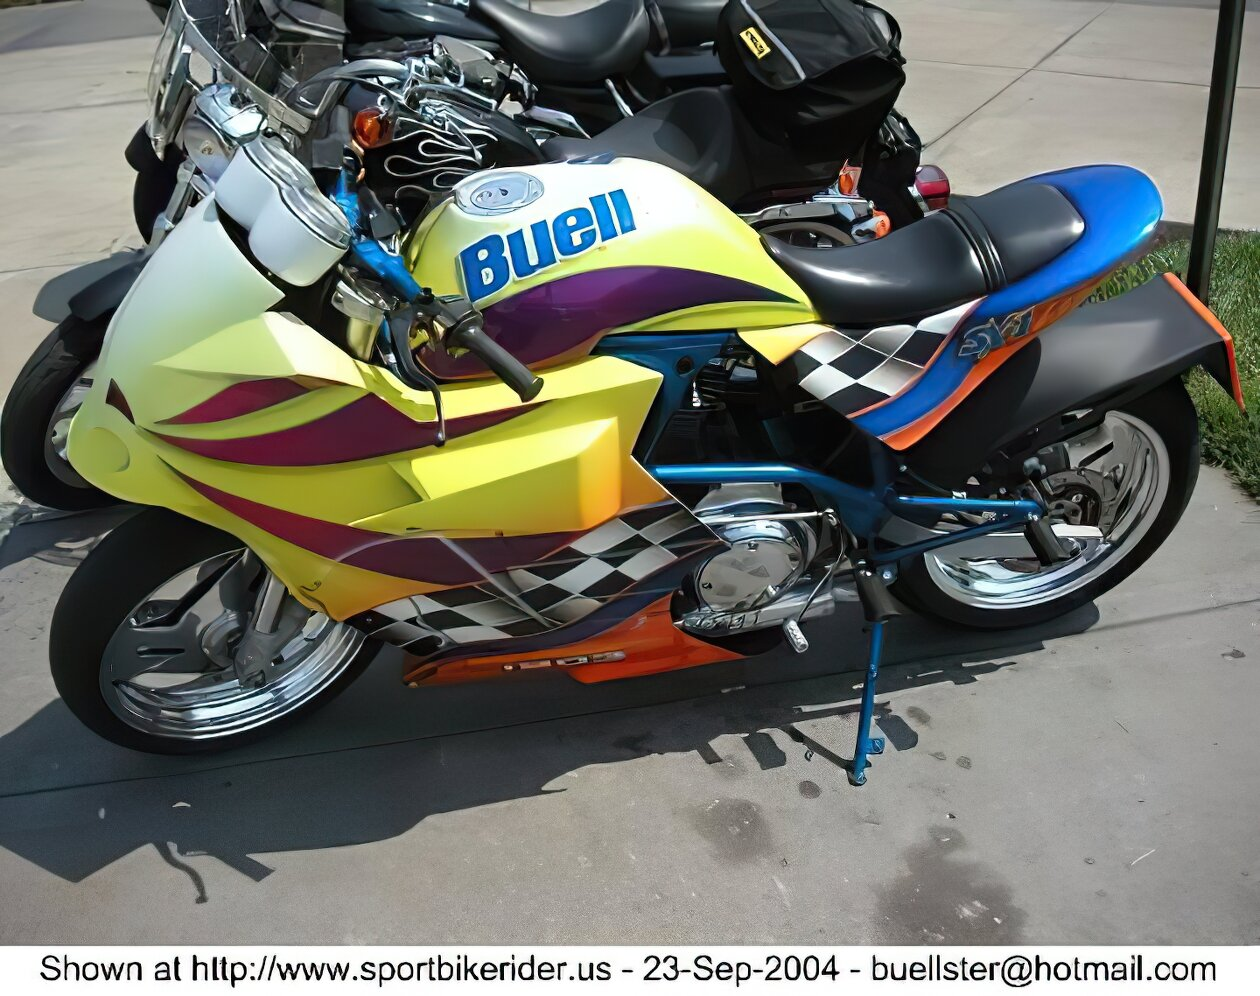 Buell S1/S2/S3 - ID: 63761